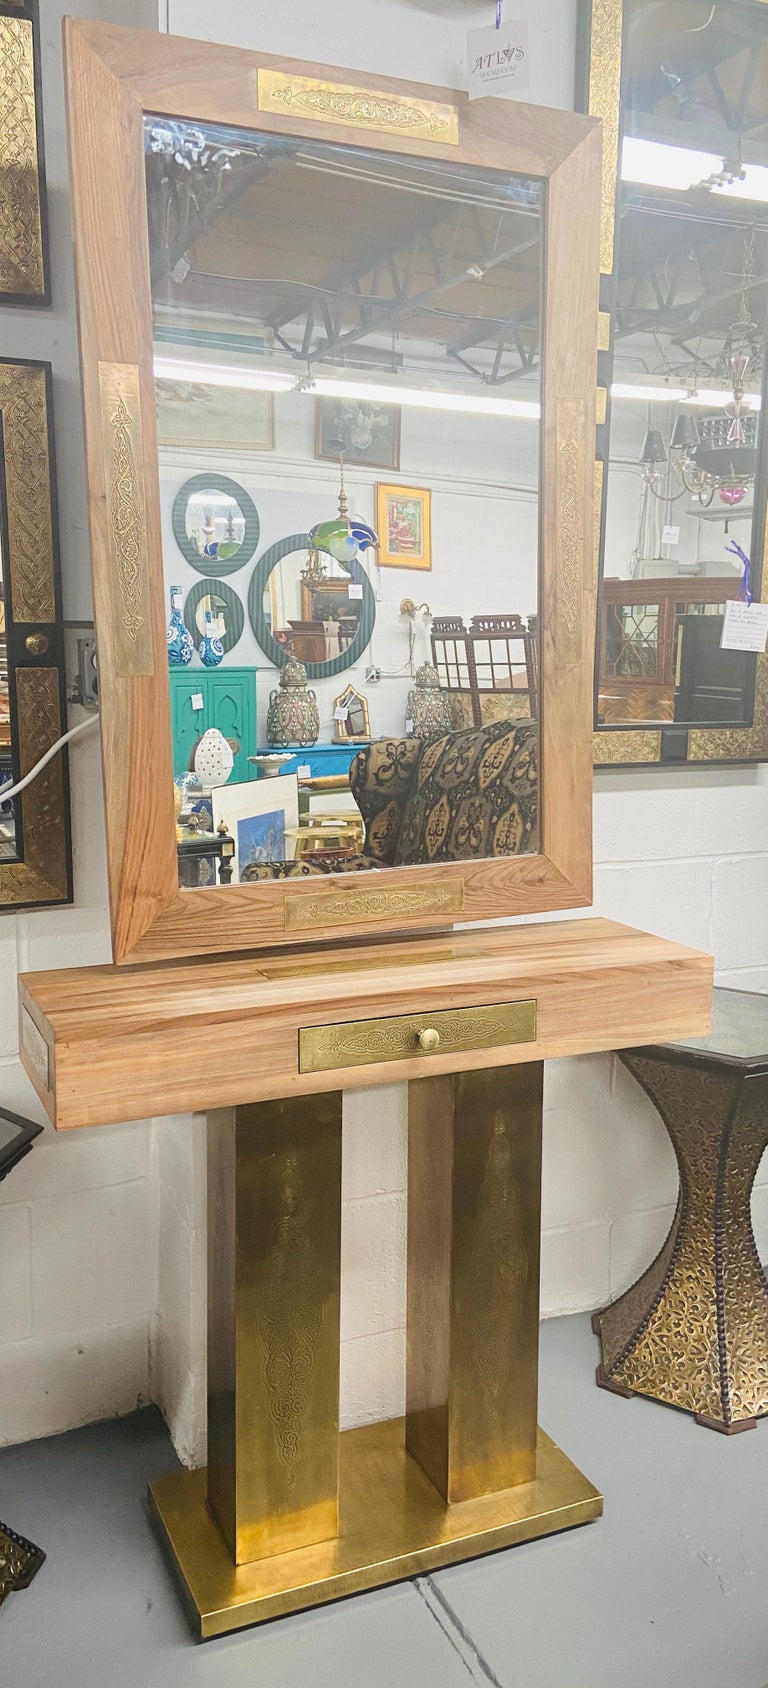 An elegant Hollywood Regency style set of mirror and console. Made of high quality walnut, the mirror and console are decorated with gold brass featuring a fine and elegant filigree design.  This mirror and console will look fabulous in your